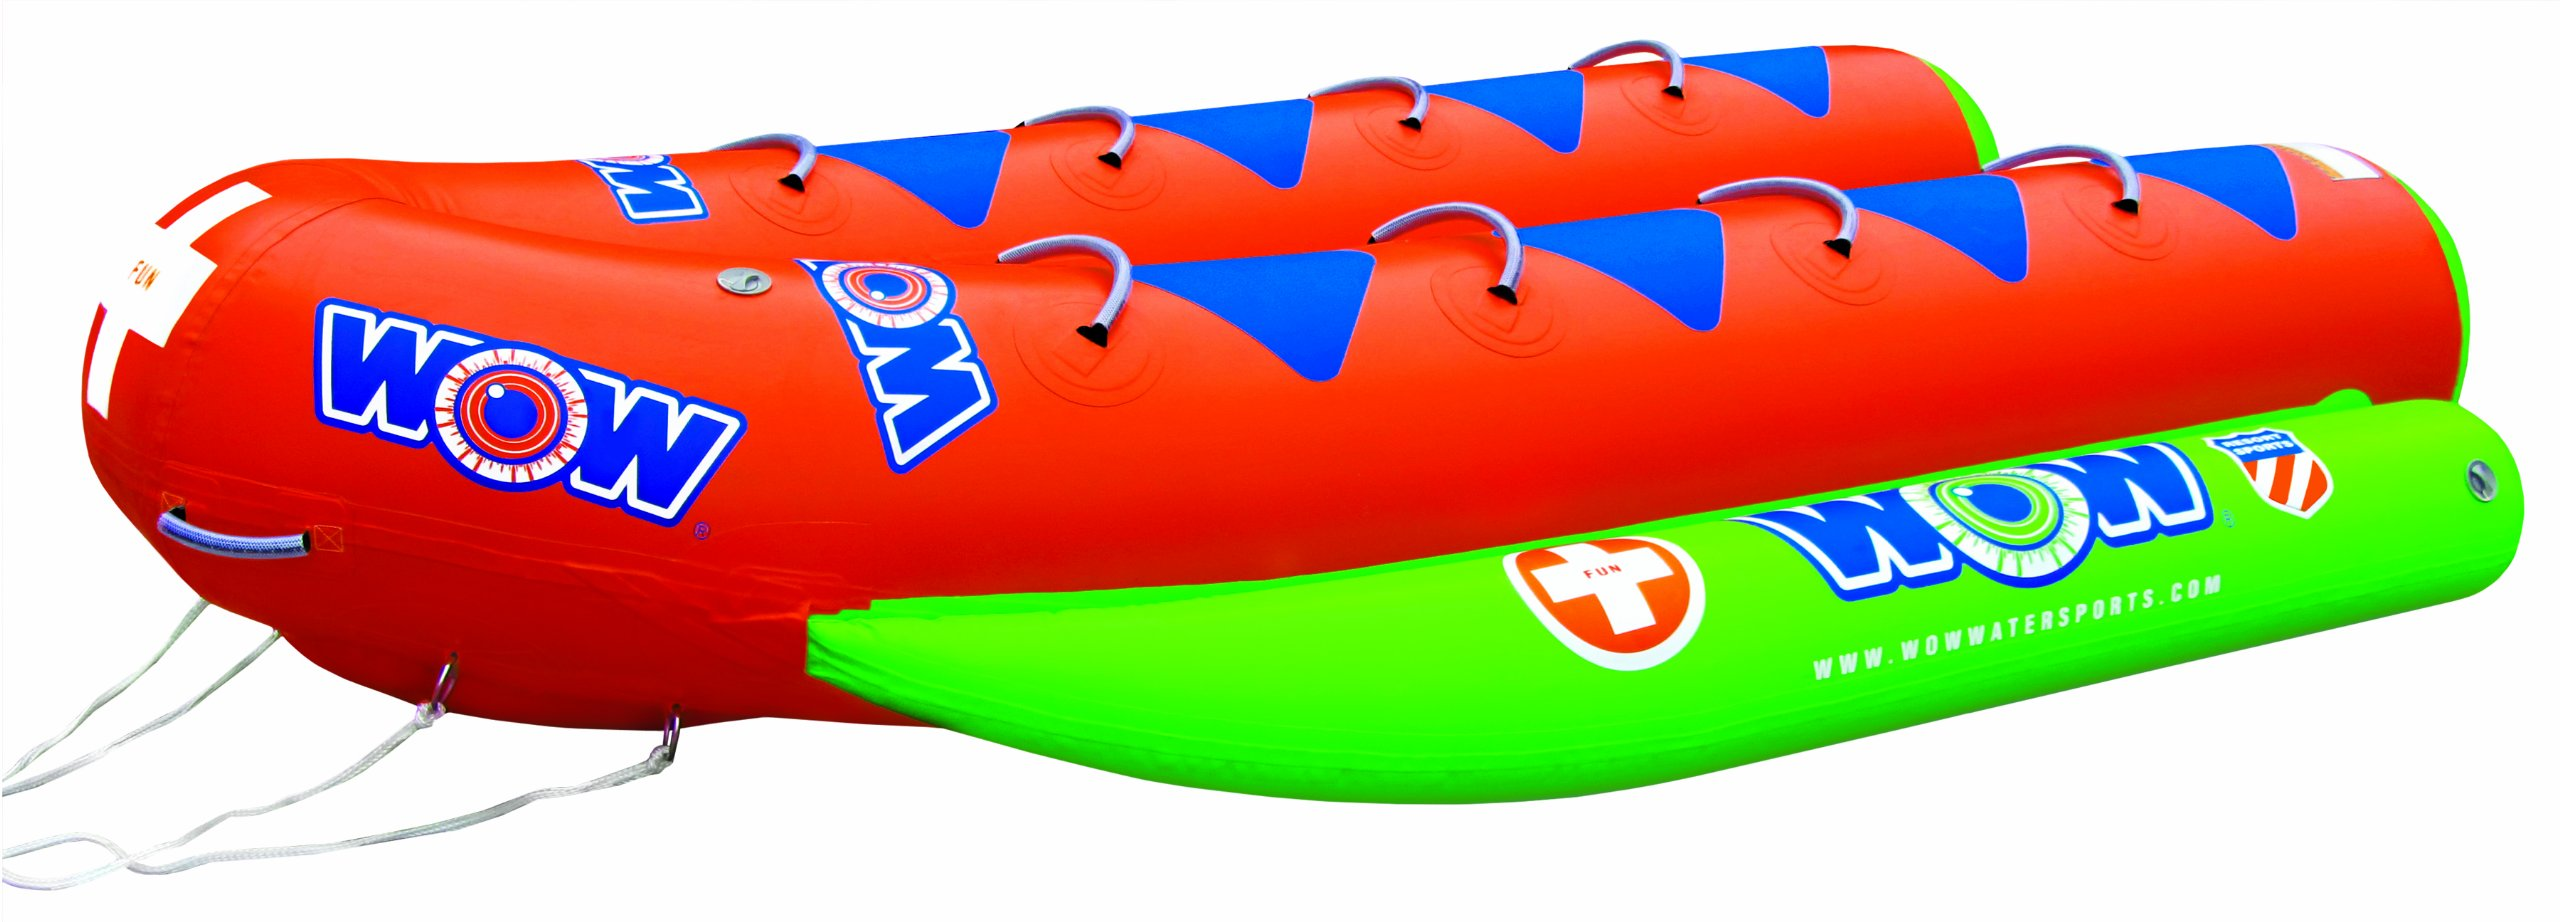 WOW World of Watersports, 12-8030, Resort Sports 8 Rider Closed Bow Towable Banana Boat